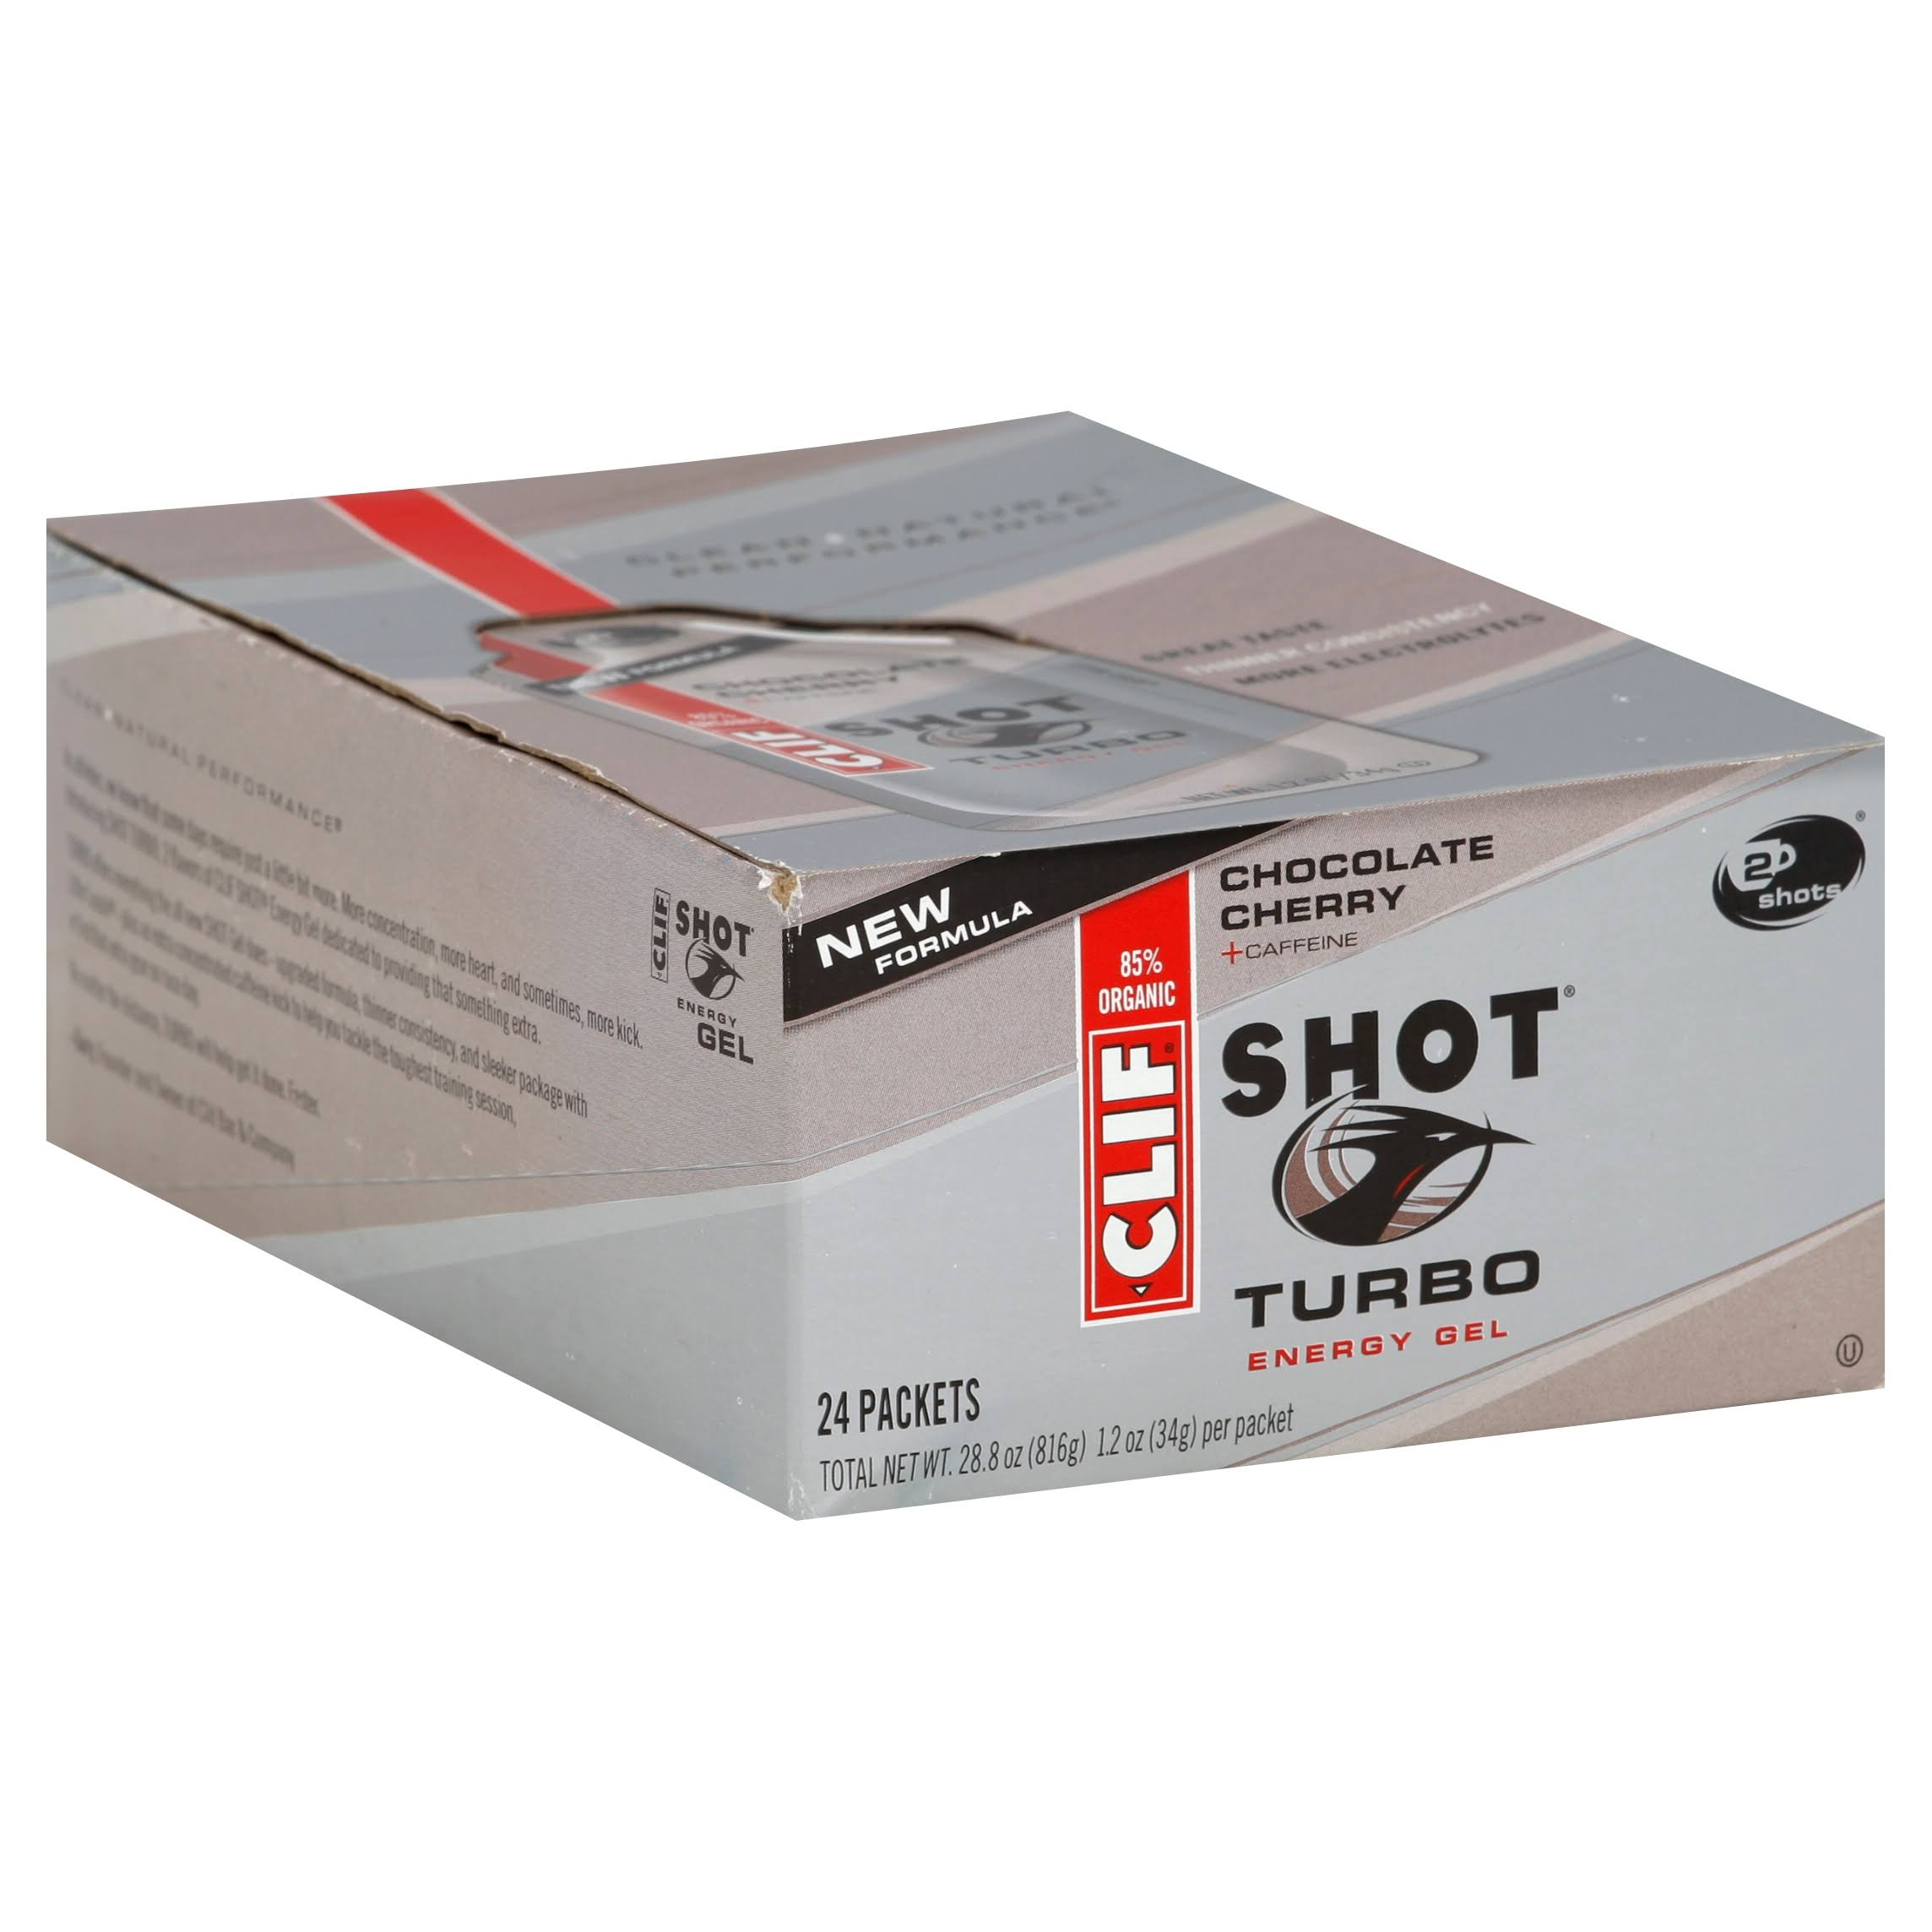 Clif Shot Energy Gel - Chocolate Cherry